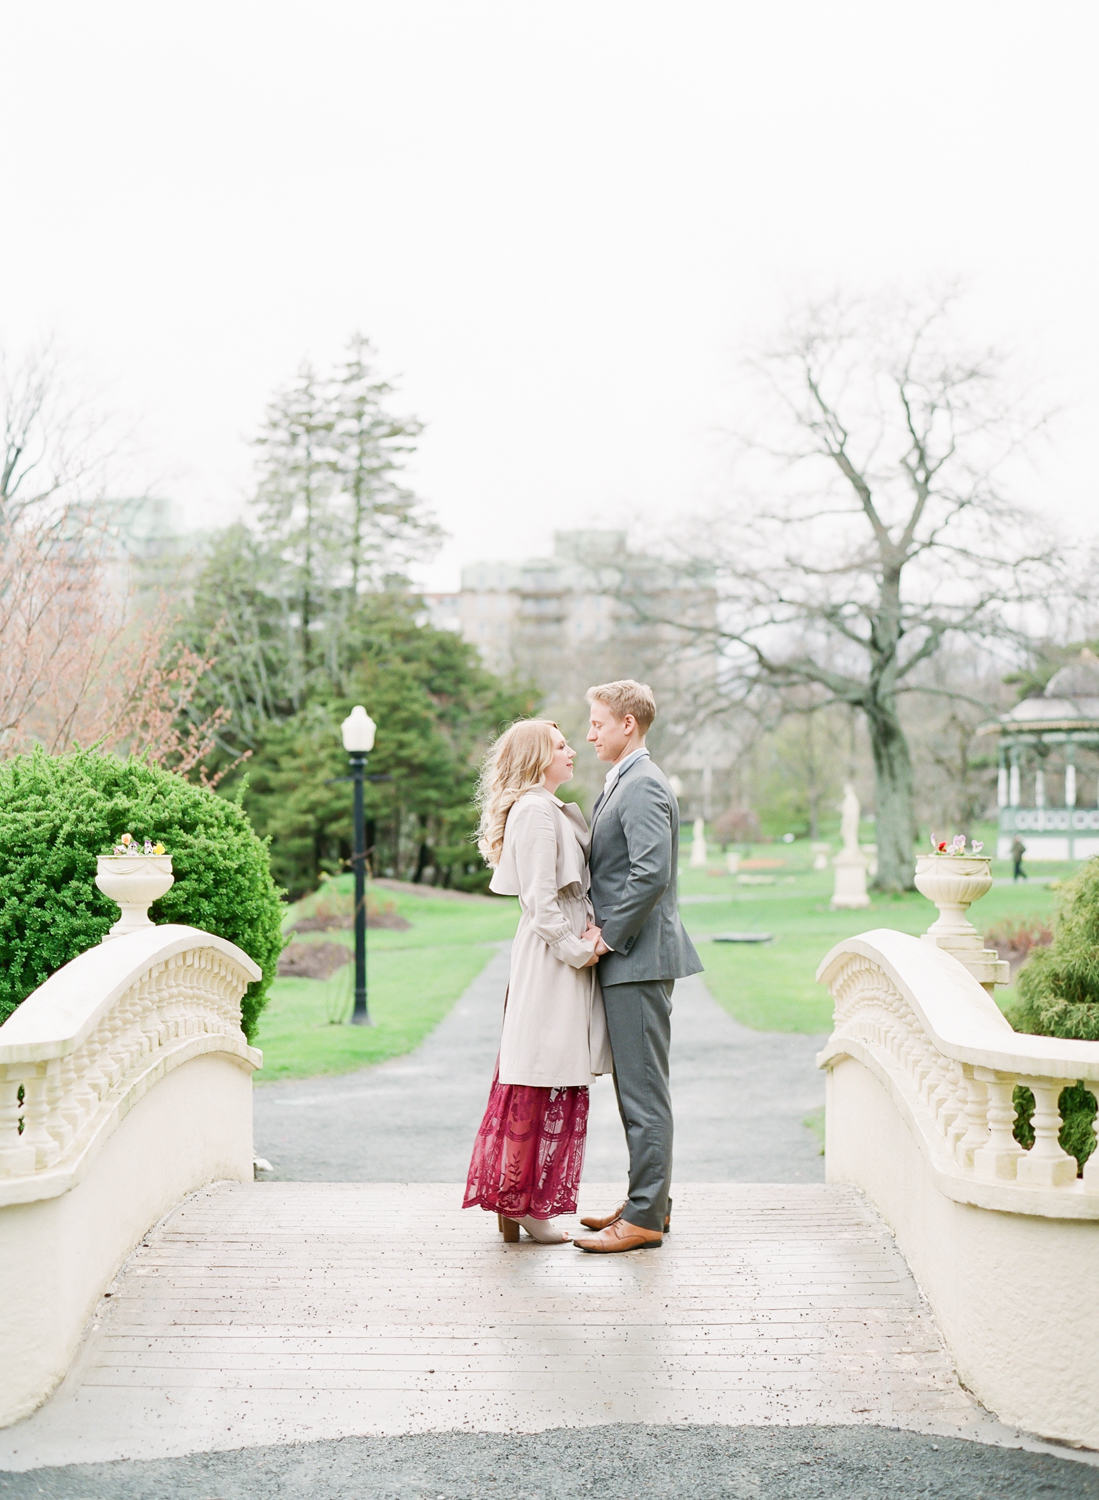 Jacqueline Anne Photography - Amanda and Brent-38.jpg